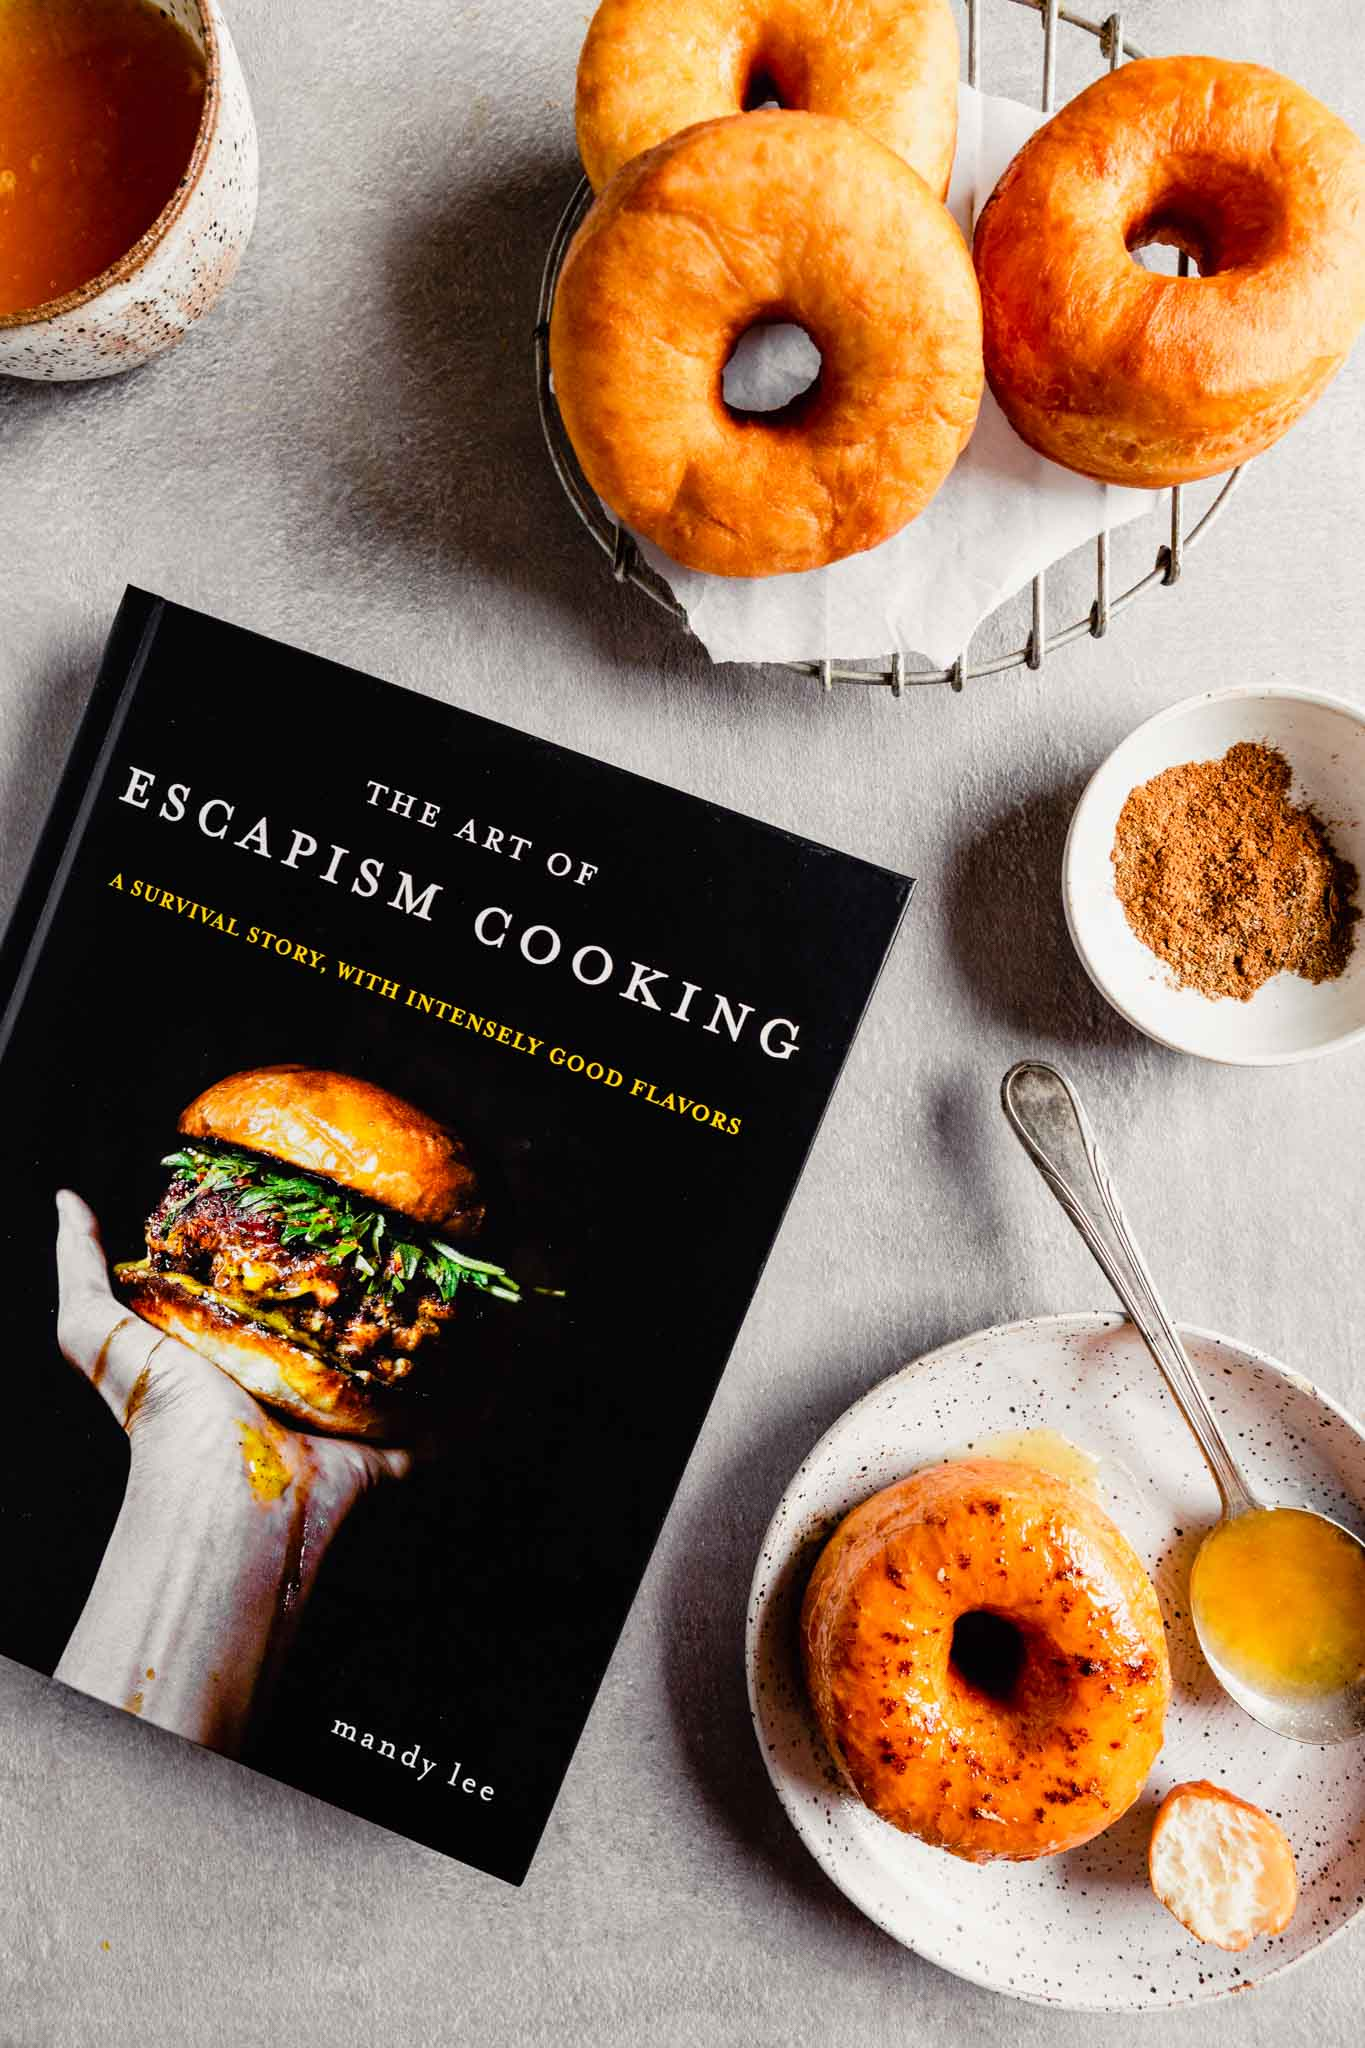 Overhead image of the Art of Escapism Cooking cookbook with donuts spread around it